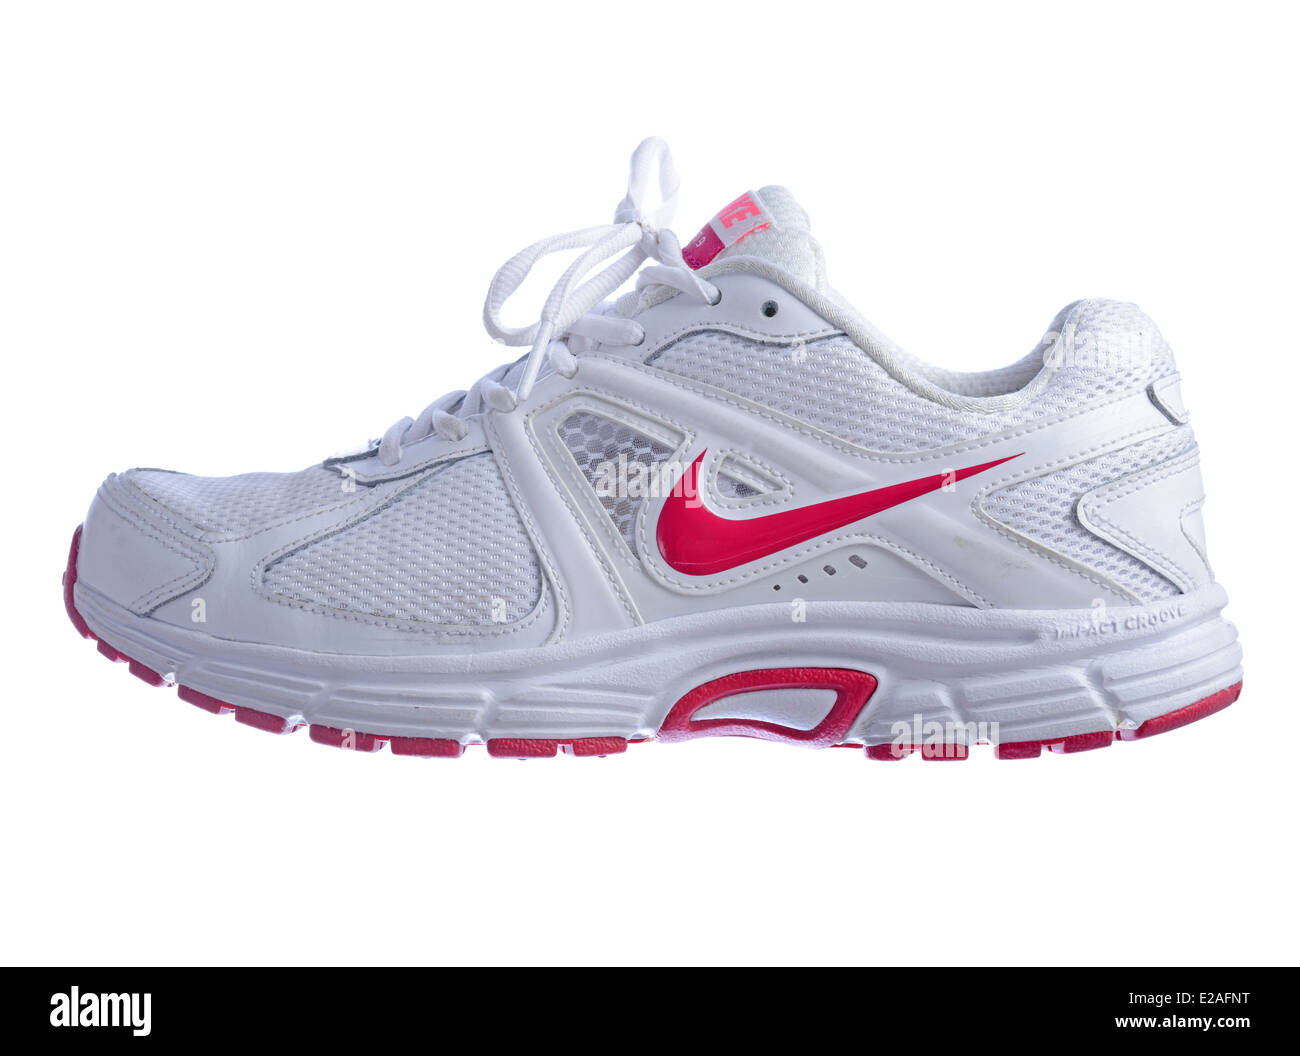 matraz congestión Detectable  White Nike Dart 9 running shoe with pink logo isolated on white Stock Photo  - Alamy